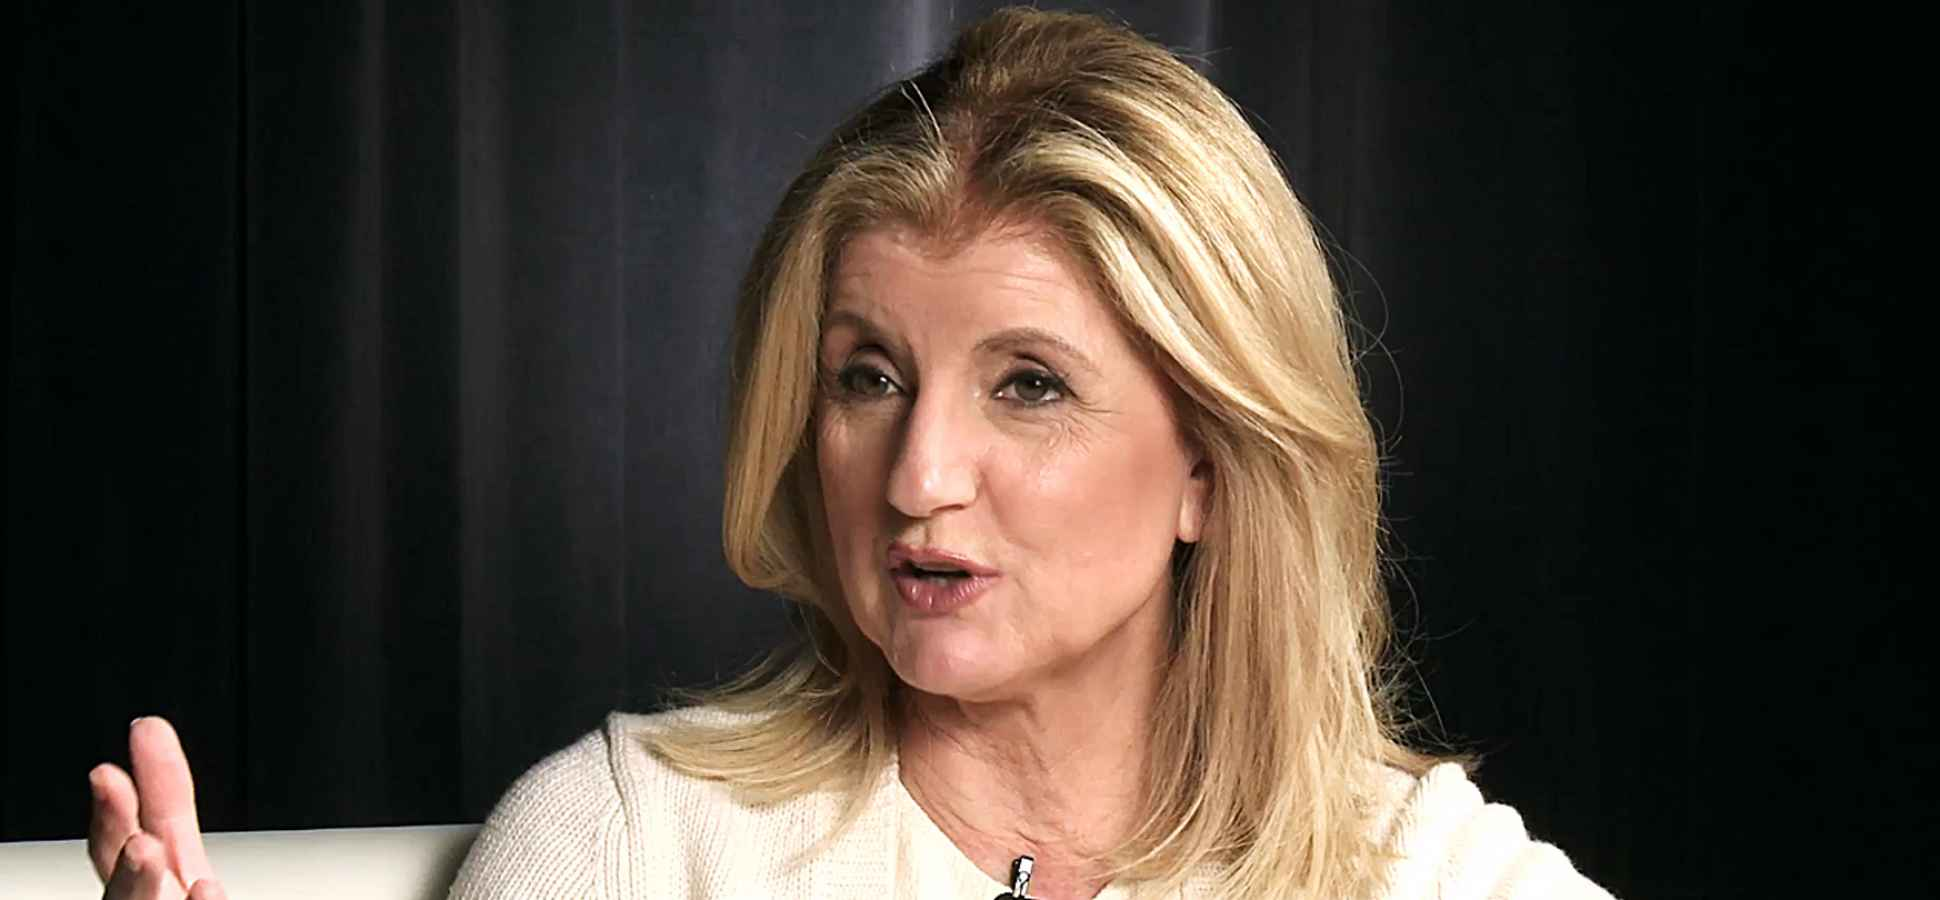 Forum on this topic: Arianna Huffington bedtime ritual experiment, arianna-huffington-bedtime-ritual-experiment/